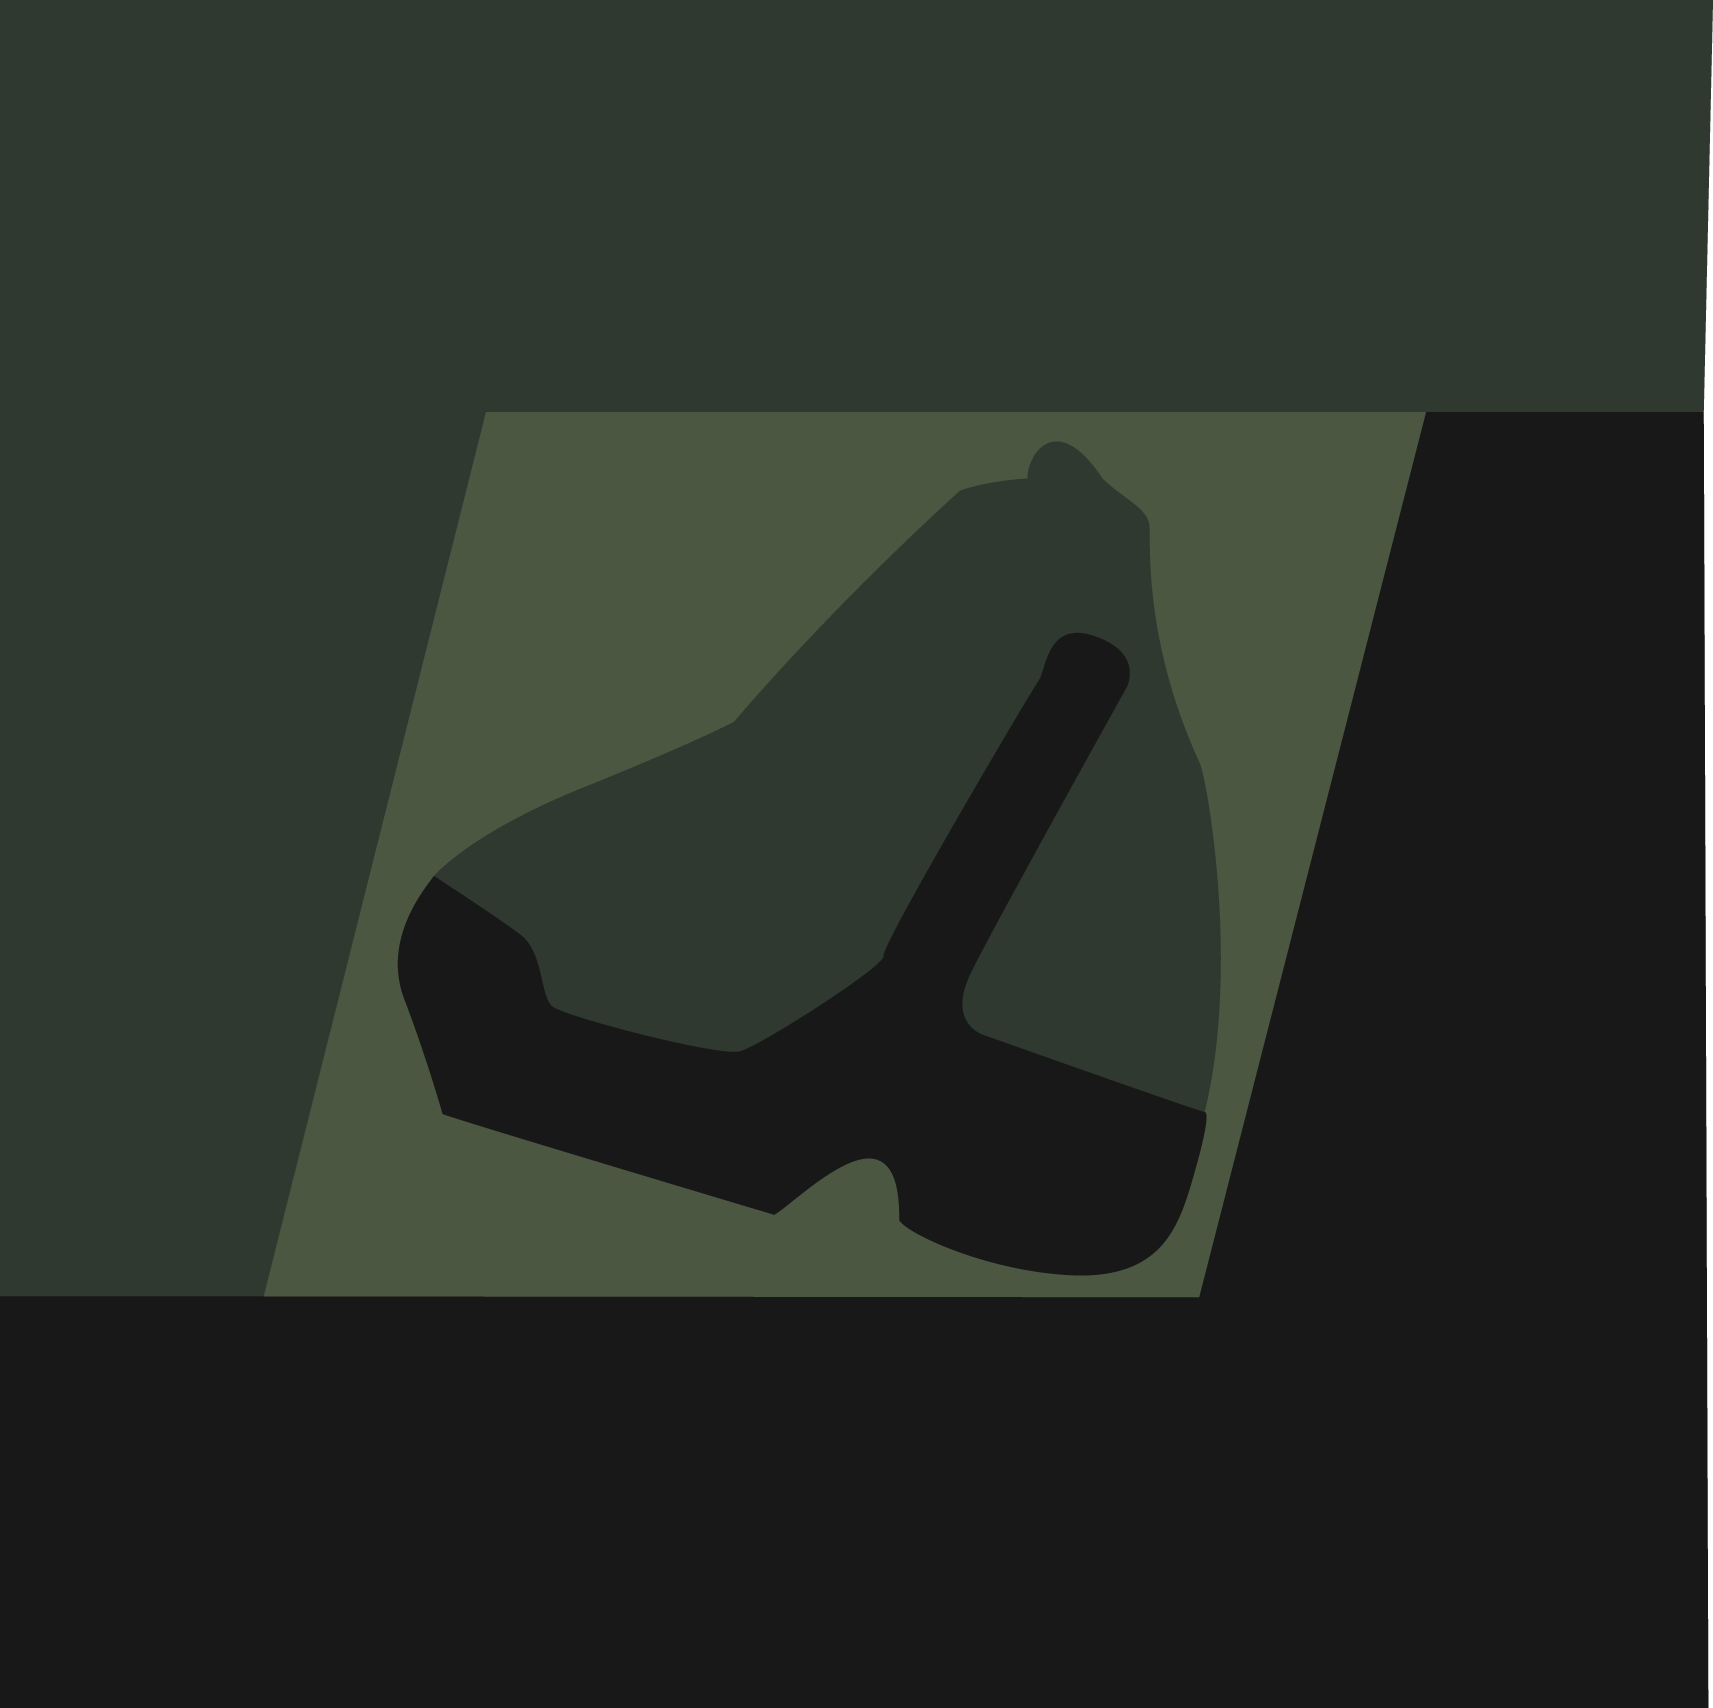 Tbonian Flag, Subdued Colour by JVanover